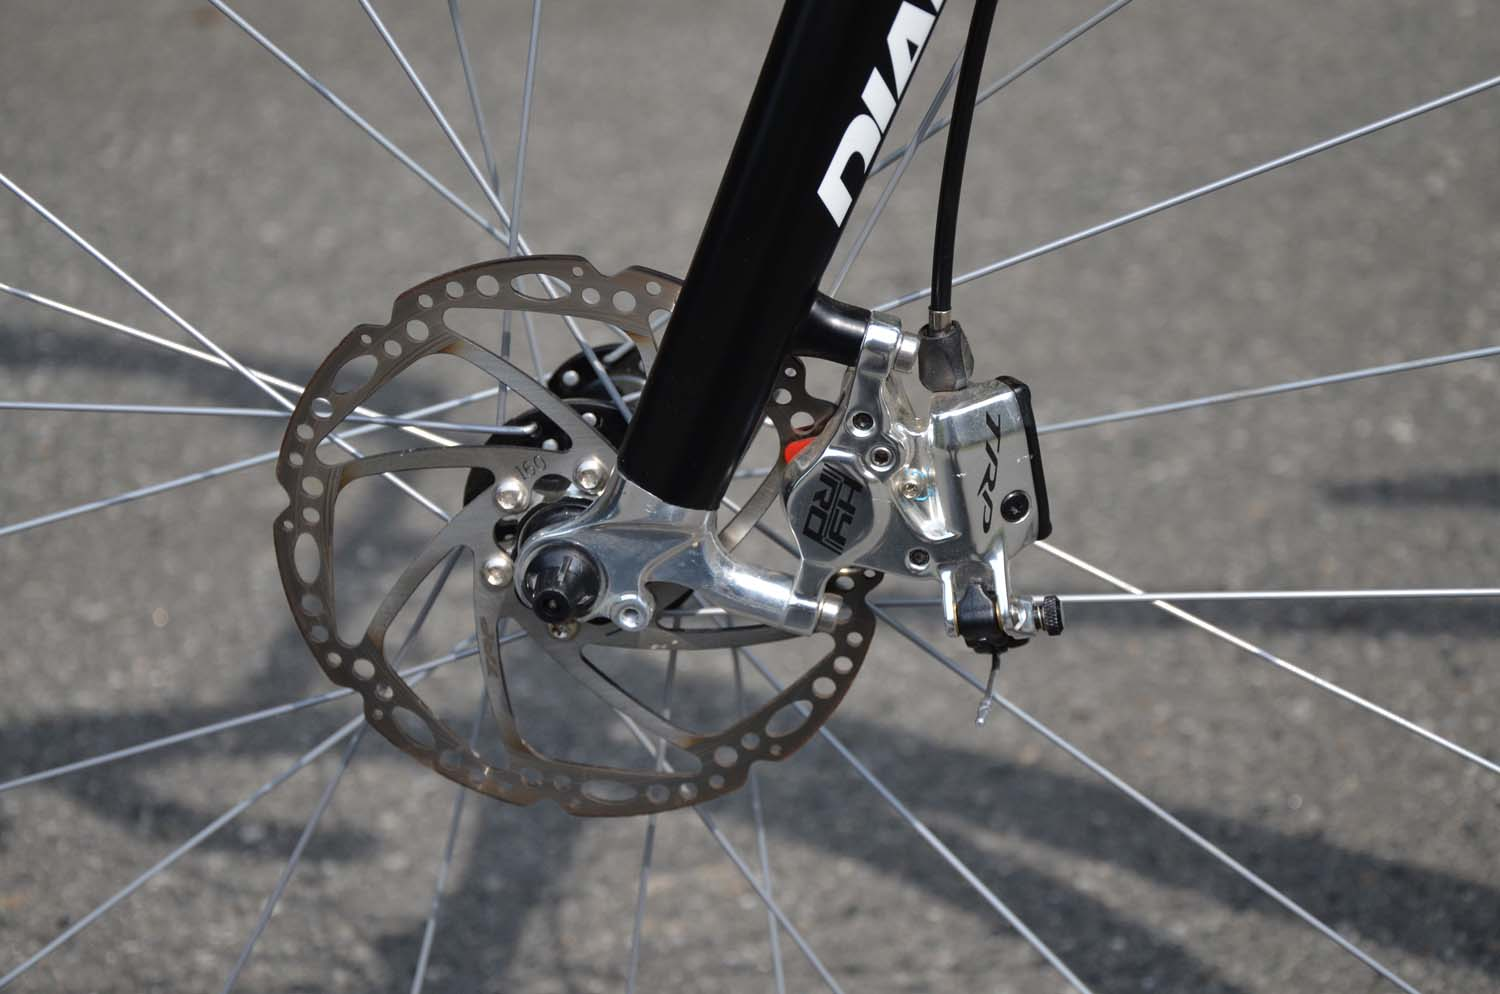 TRP brakes deliver excellent braking performance in all weather conditions